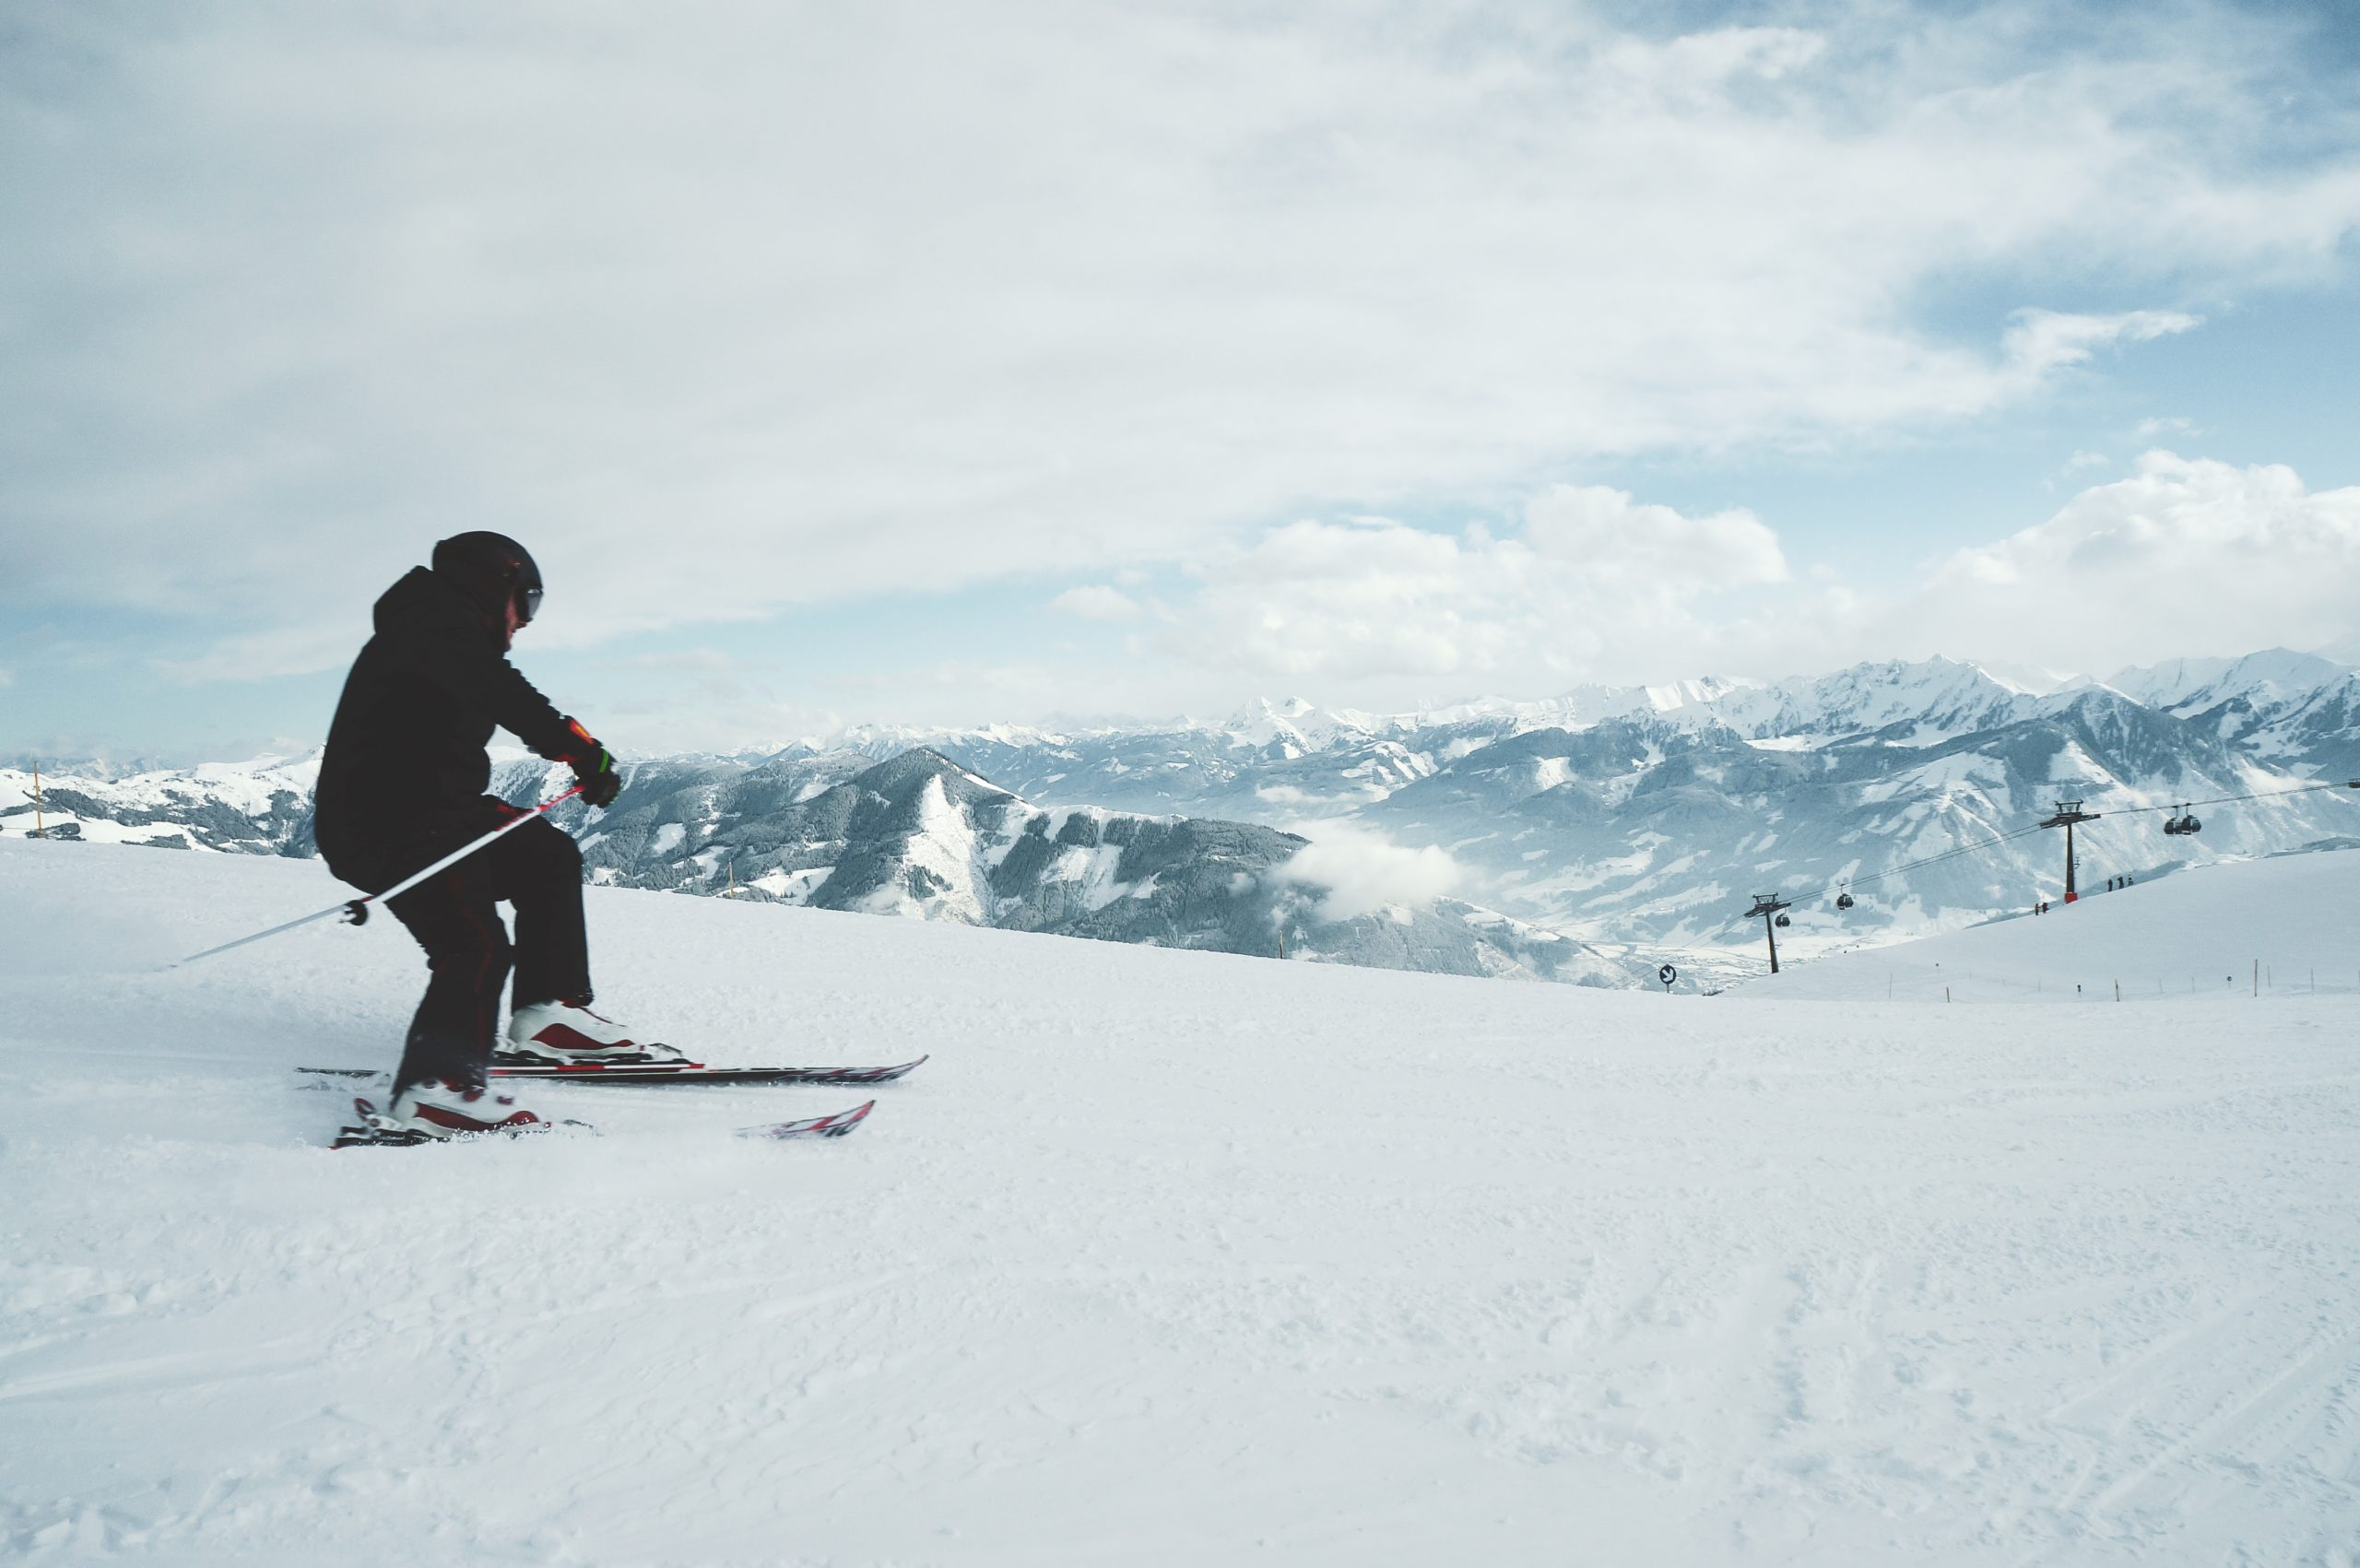 Beautiful shot of a man skiing on the mountains covered with white